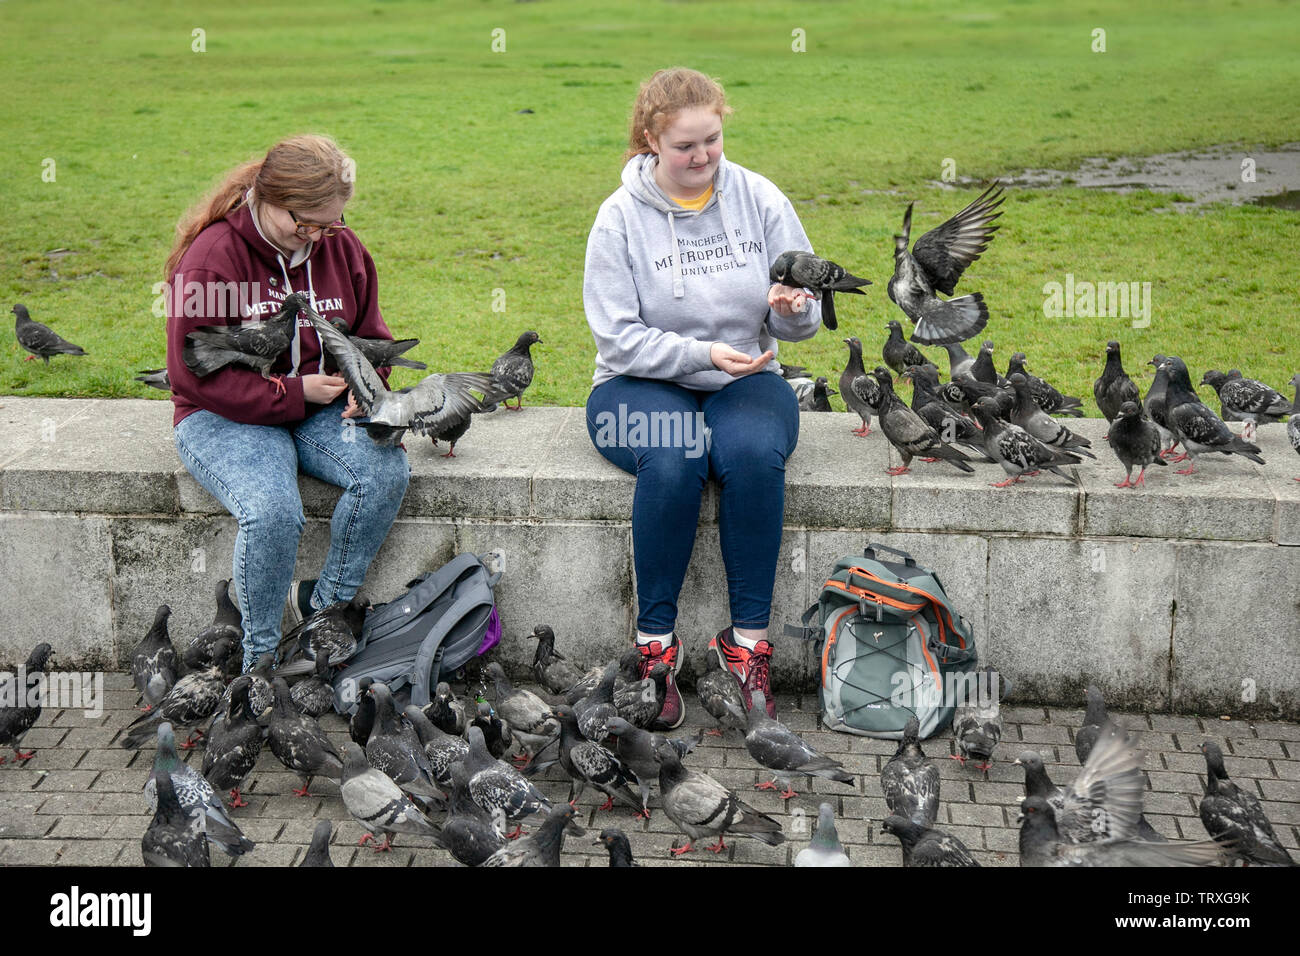 Manchester University students, seated tourists feeding a flock of feral pigeons in Piccadilly gardens, UK - Stock Image